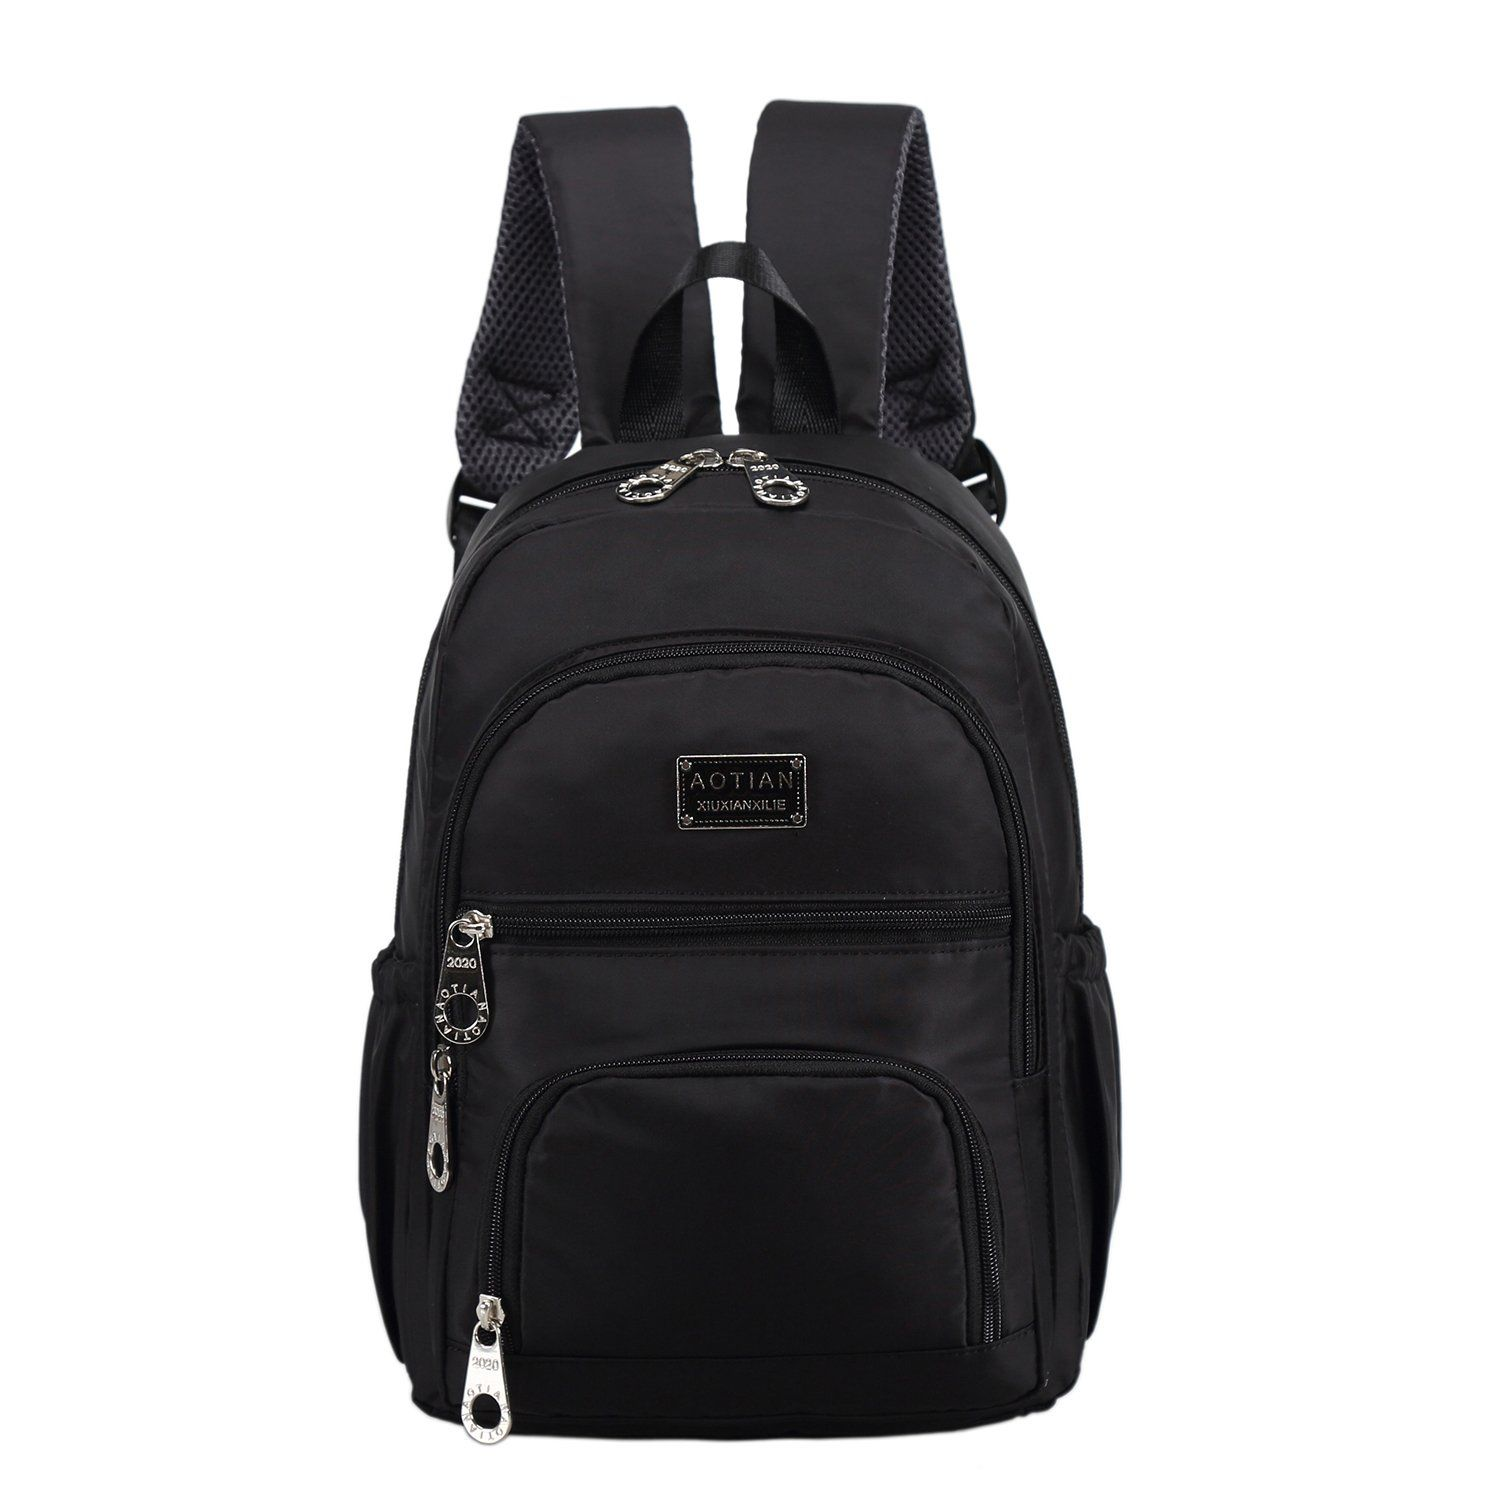 AOTIAN Small Nylon Women Backpacks Casual Lightweight Strong Packback  Daypack For Girls Cycling Hiking Camping Travel 47a0764510a1f